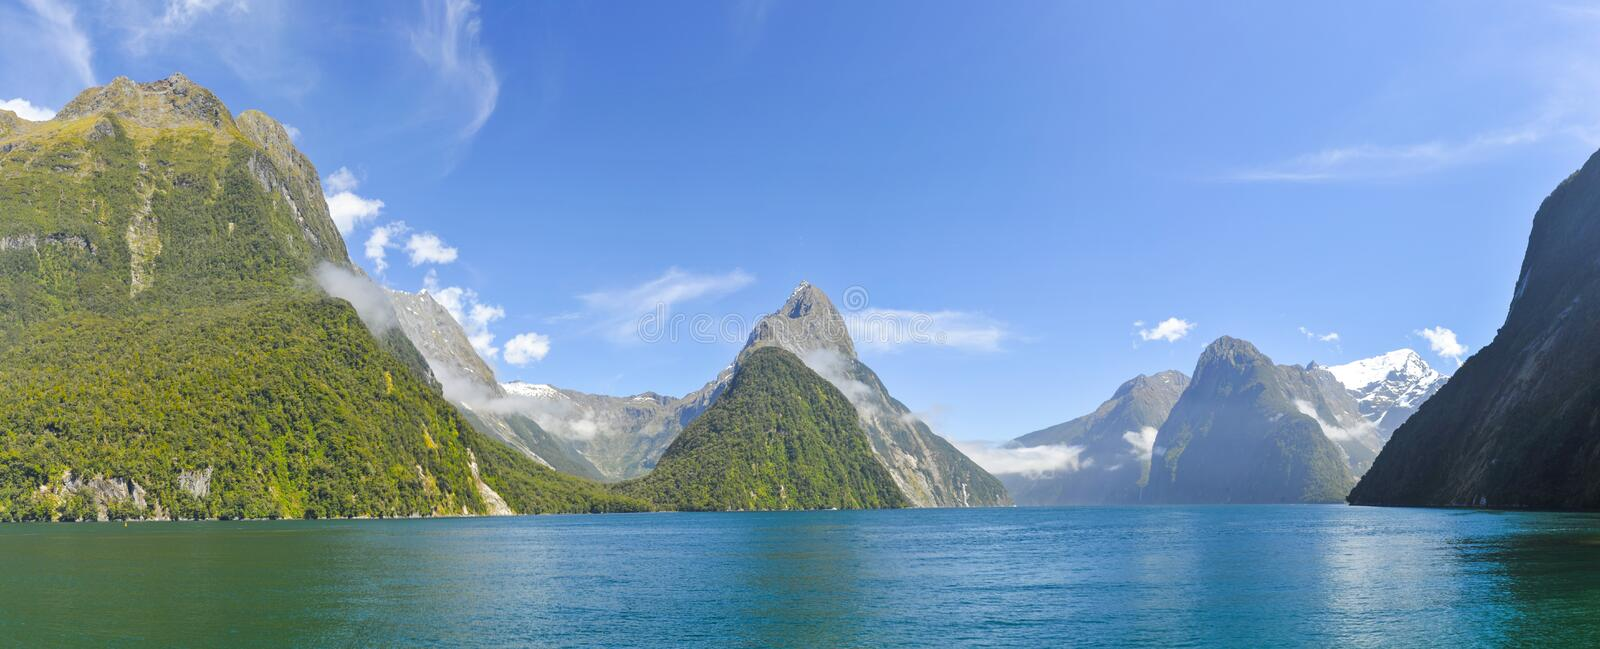 Milford Sound. Famous Mitre Peak rising from the Milford Sound fiord. Fiordland national park, New Zealand. Panoramic photo royalty free stock image